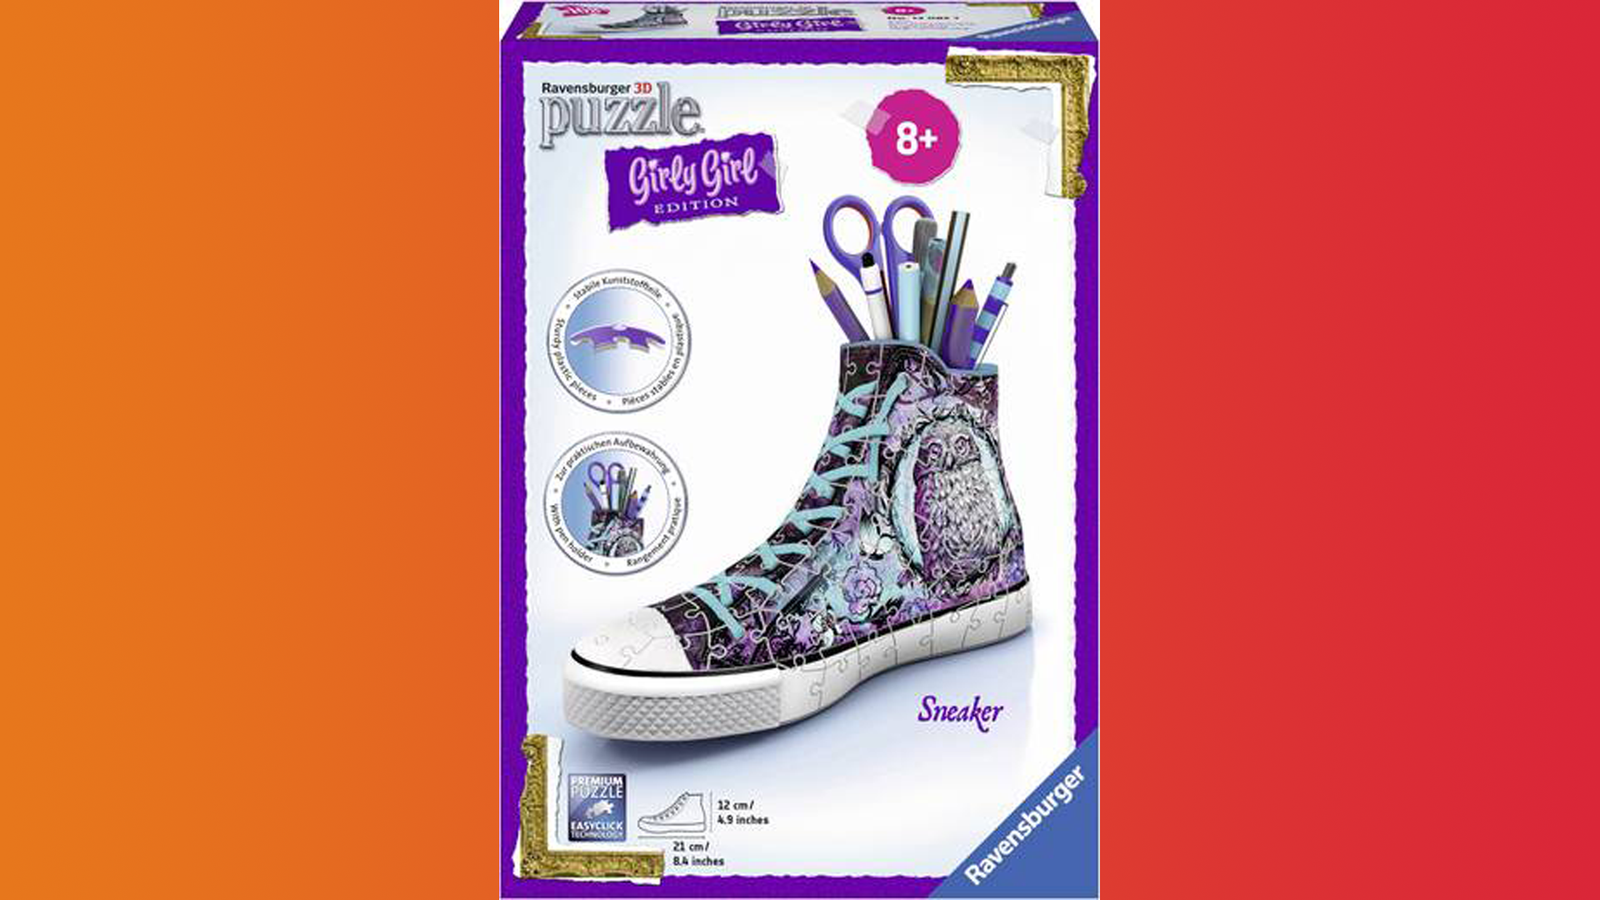 Wunsch-Nr. 140, Julia, 9 Jahre, Ravensburger 3D Puzzle Sneaker - Girly Girl Edition - Animal Trend, Franz Carl Weber, CHF 26.95